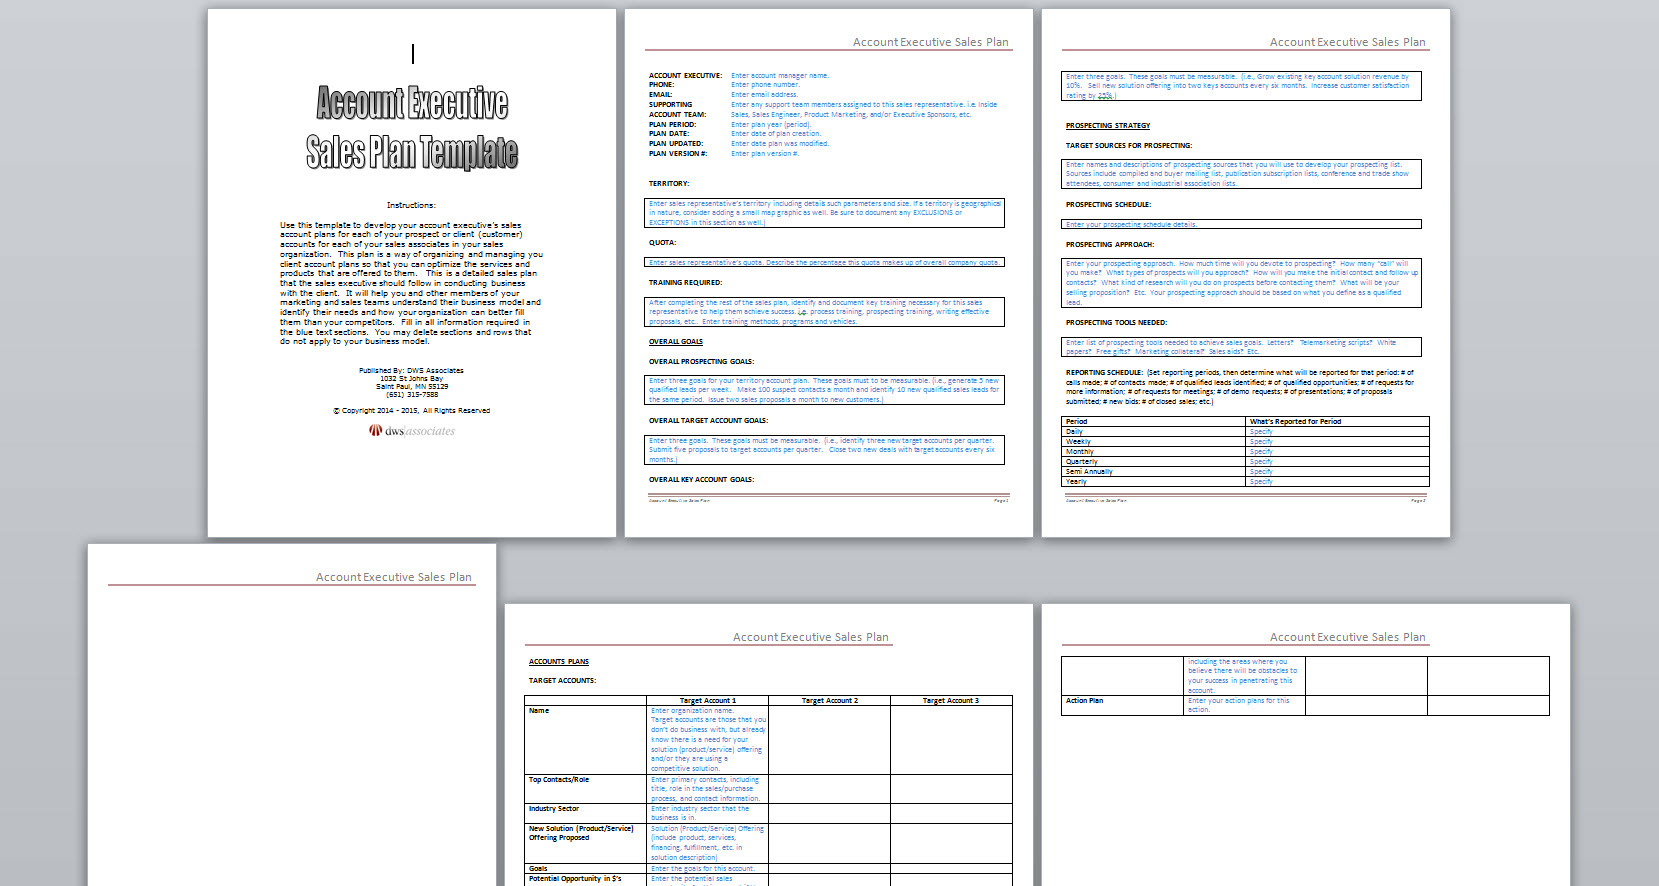 Account executive sales plan template sales executive sales plan template accmission